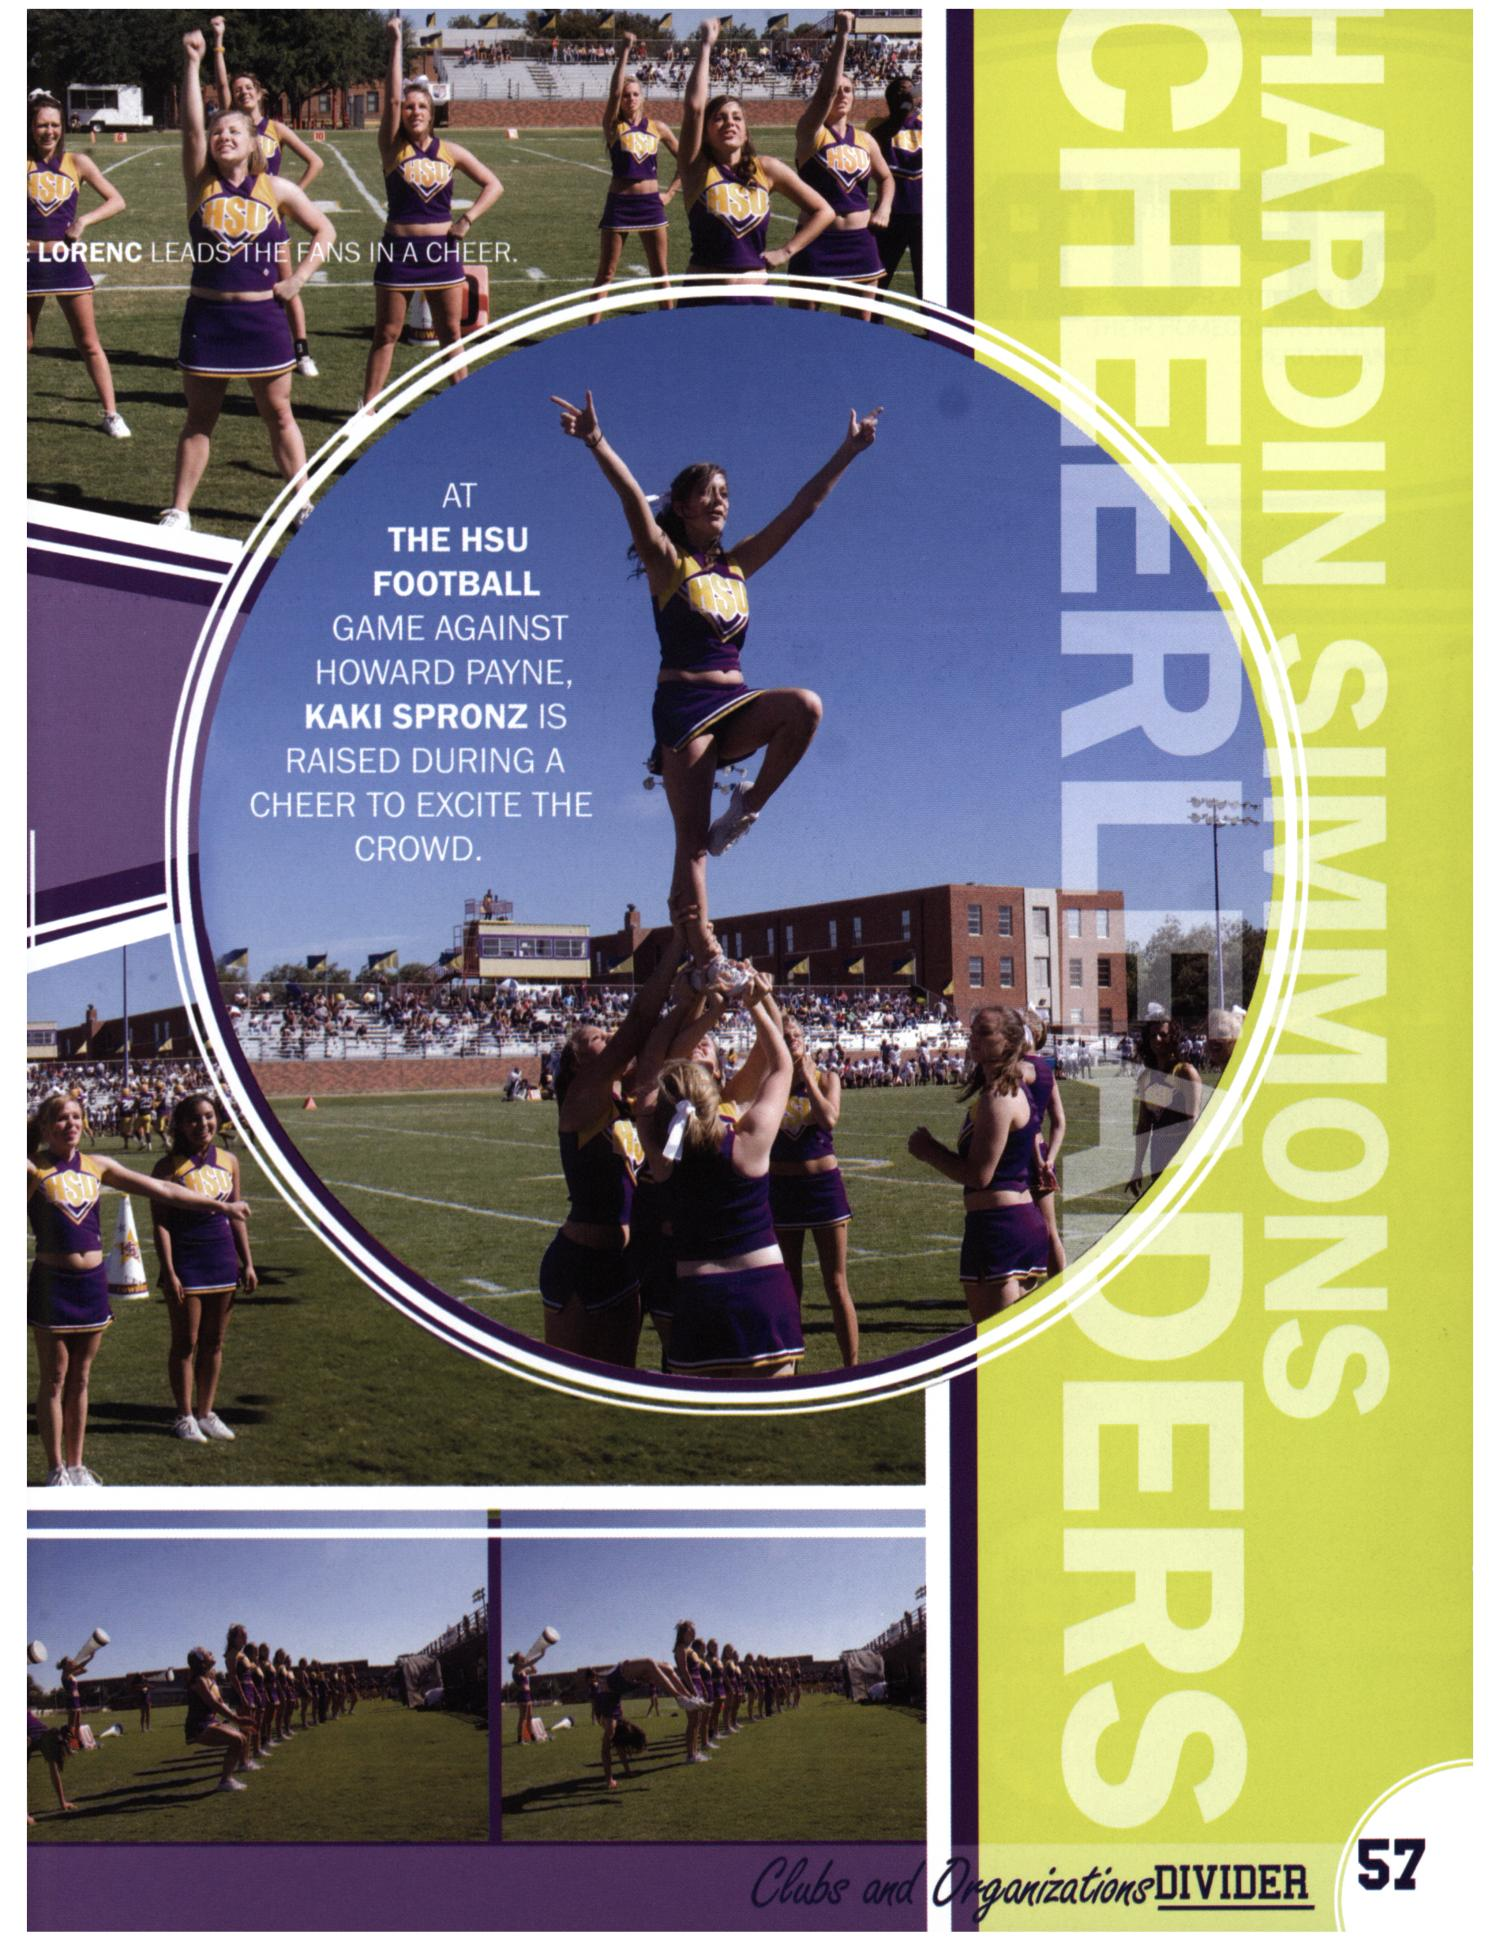 The Bronco, Yearbook of Hardin-Simmons University, 2008                                                                                                      57